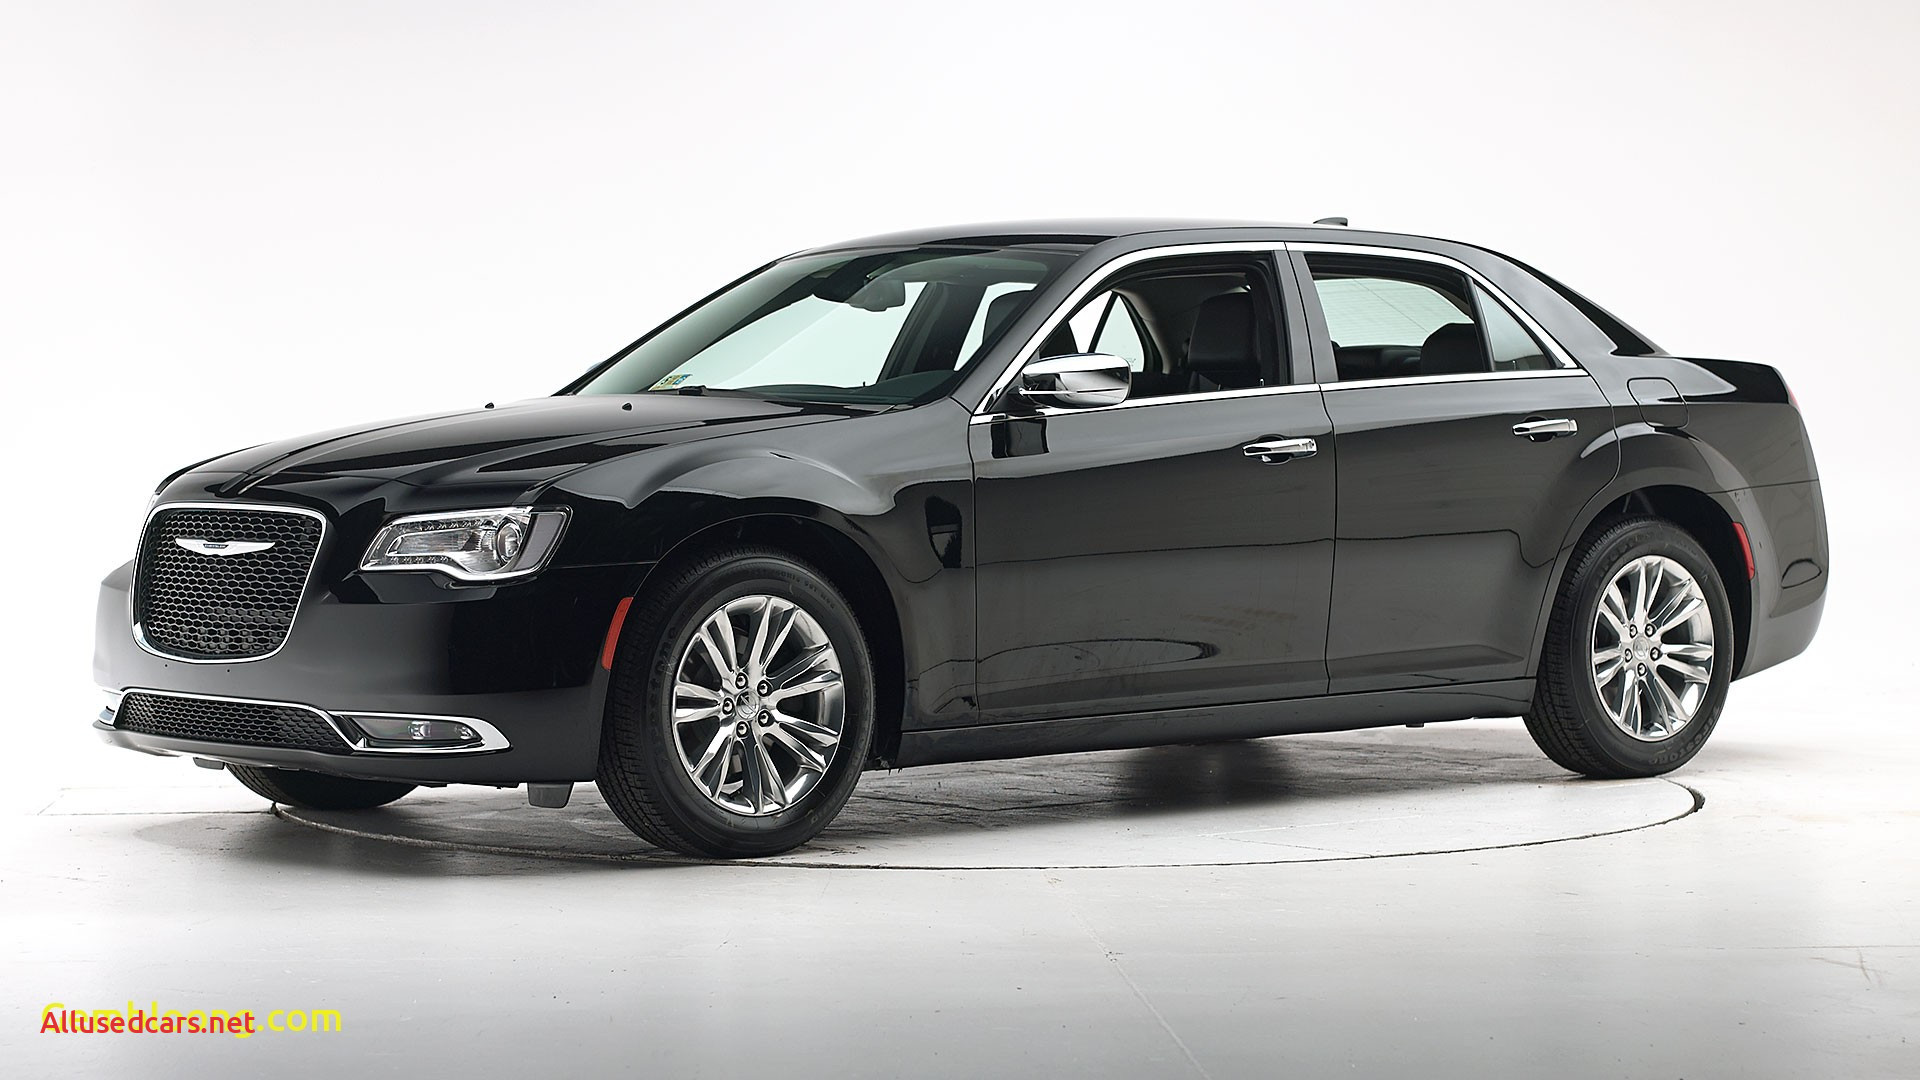 2011 Chrysler 300 Inspirational All Used Cars